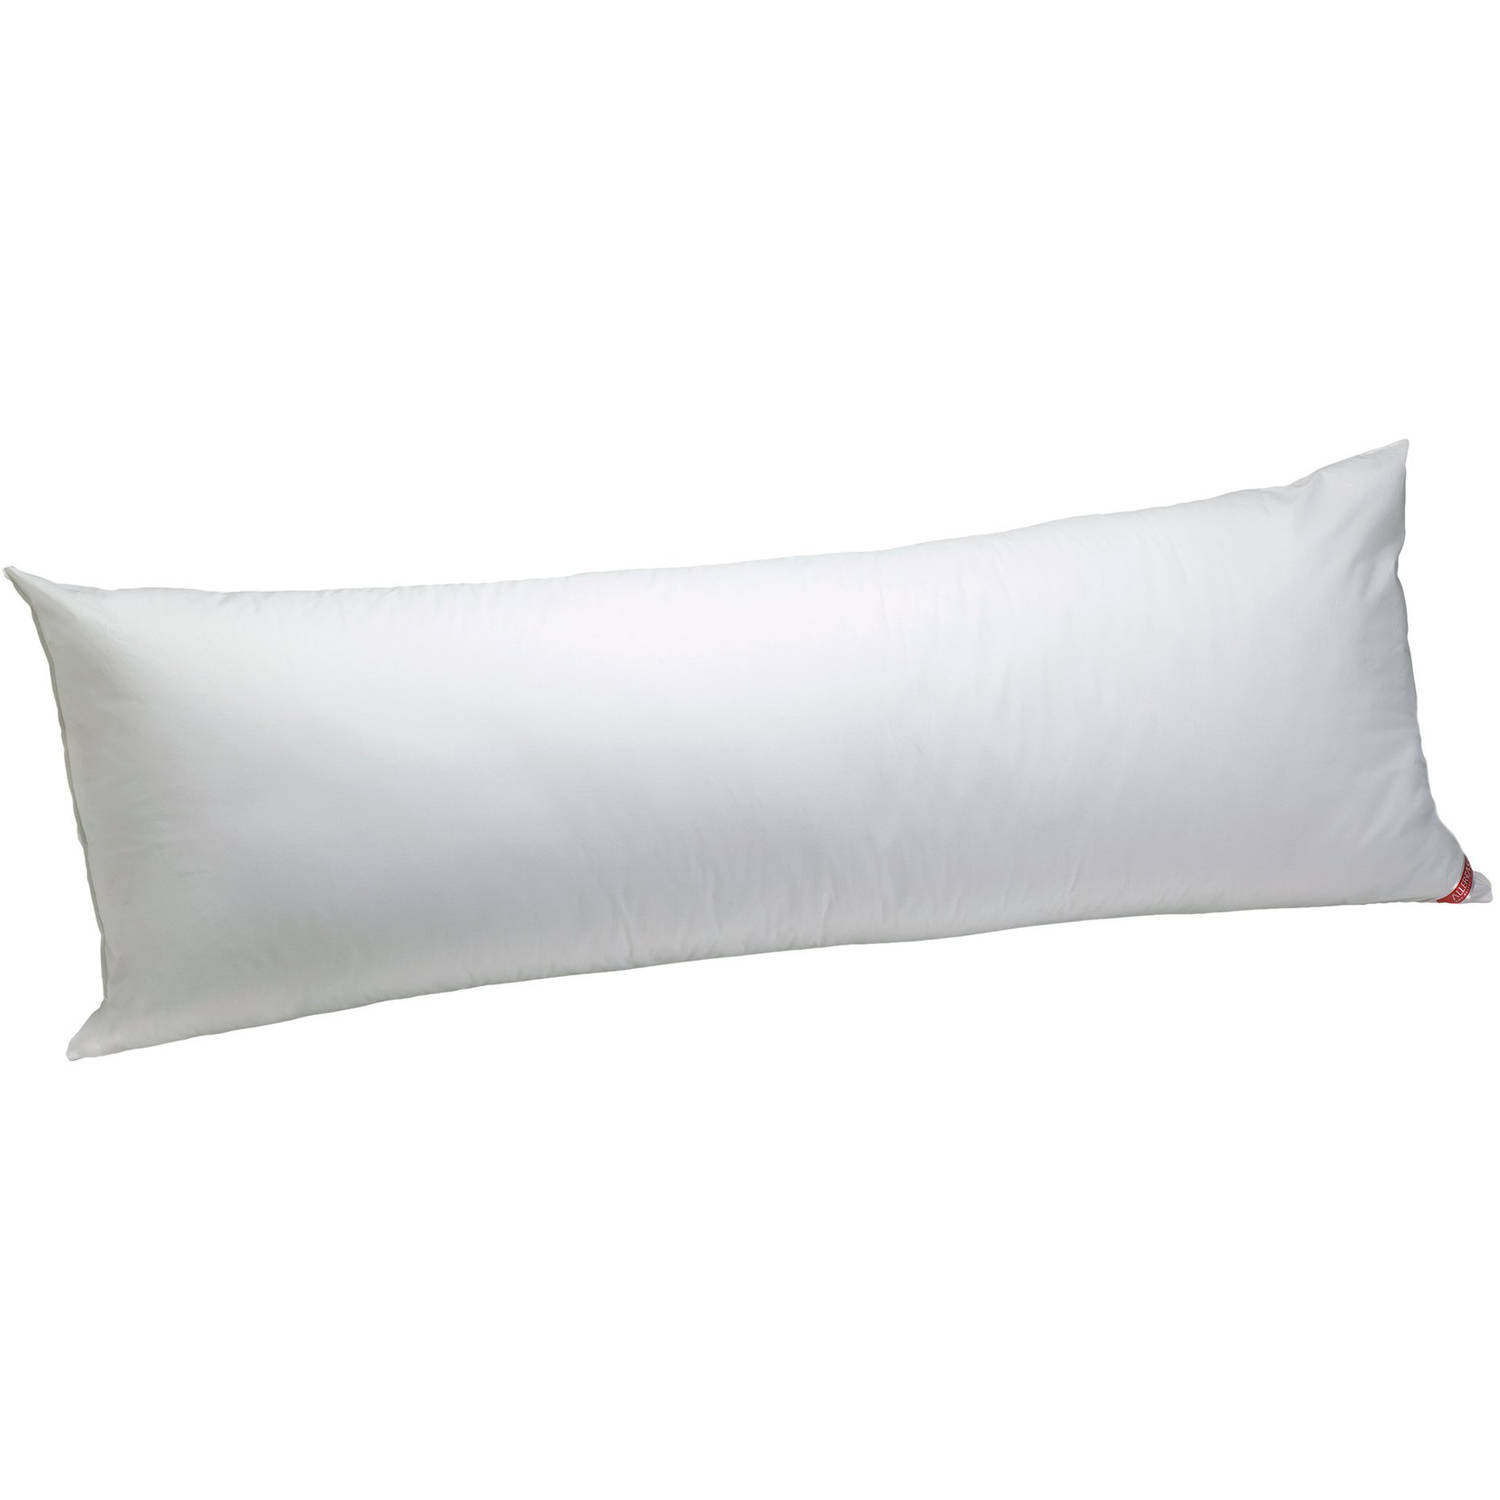 Pillow with Armrests | Bed Recliner Pillow | Bed Pillow with Arms